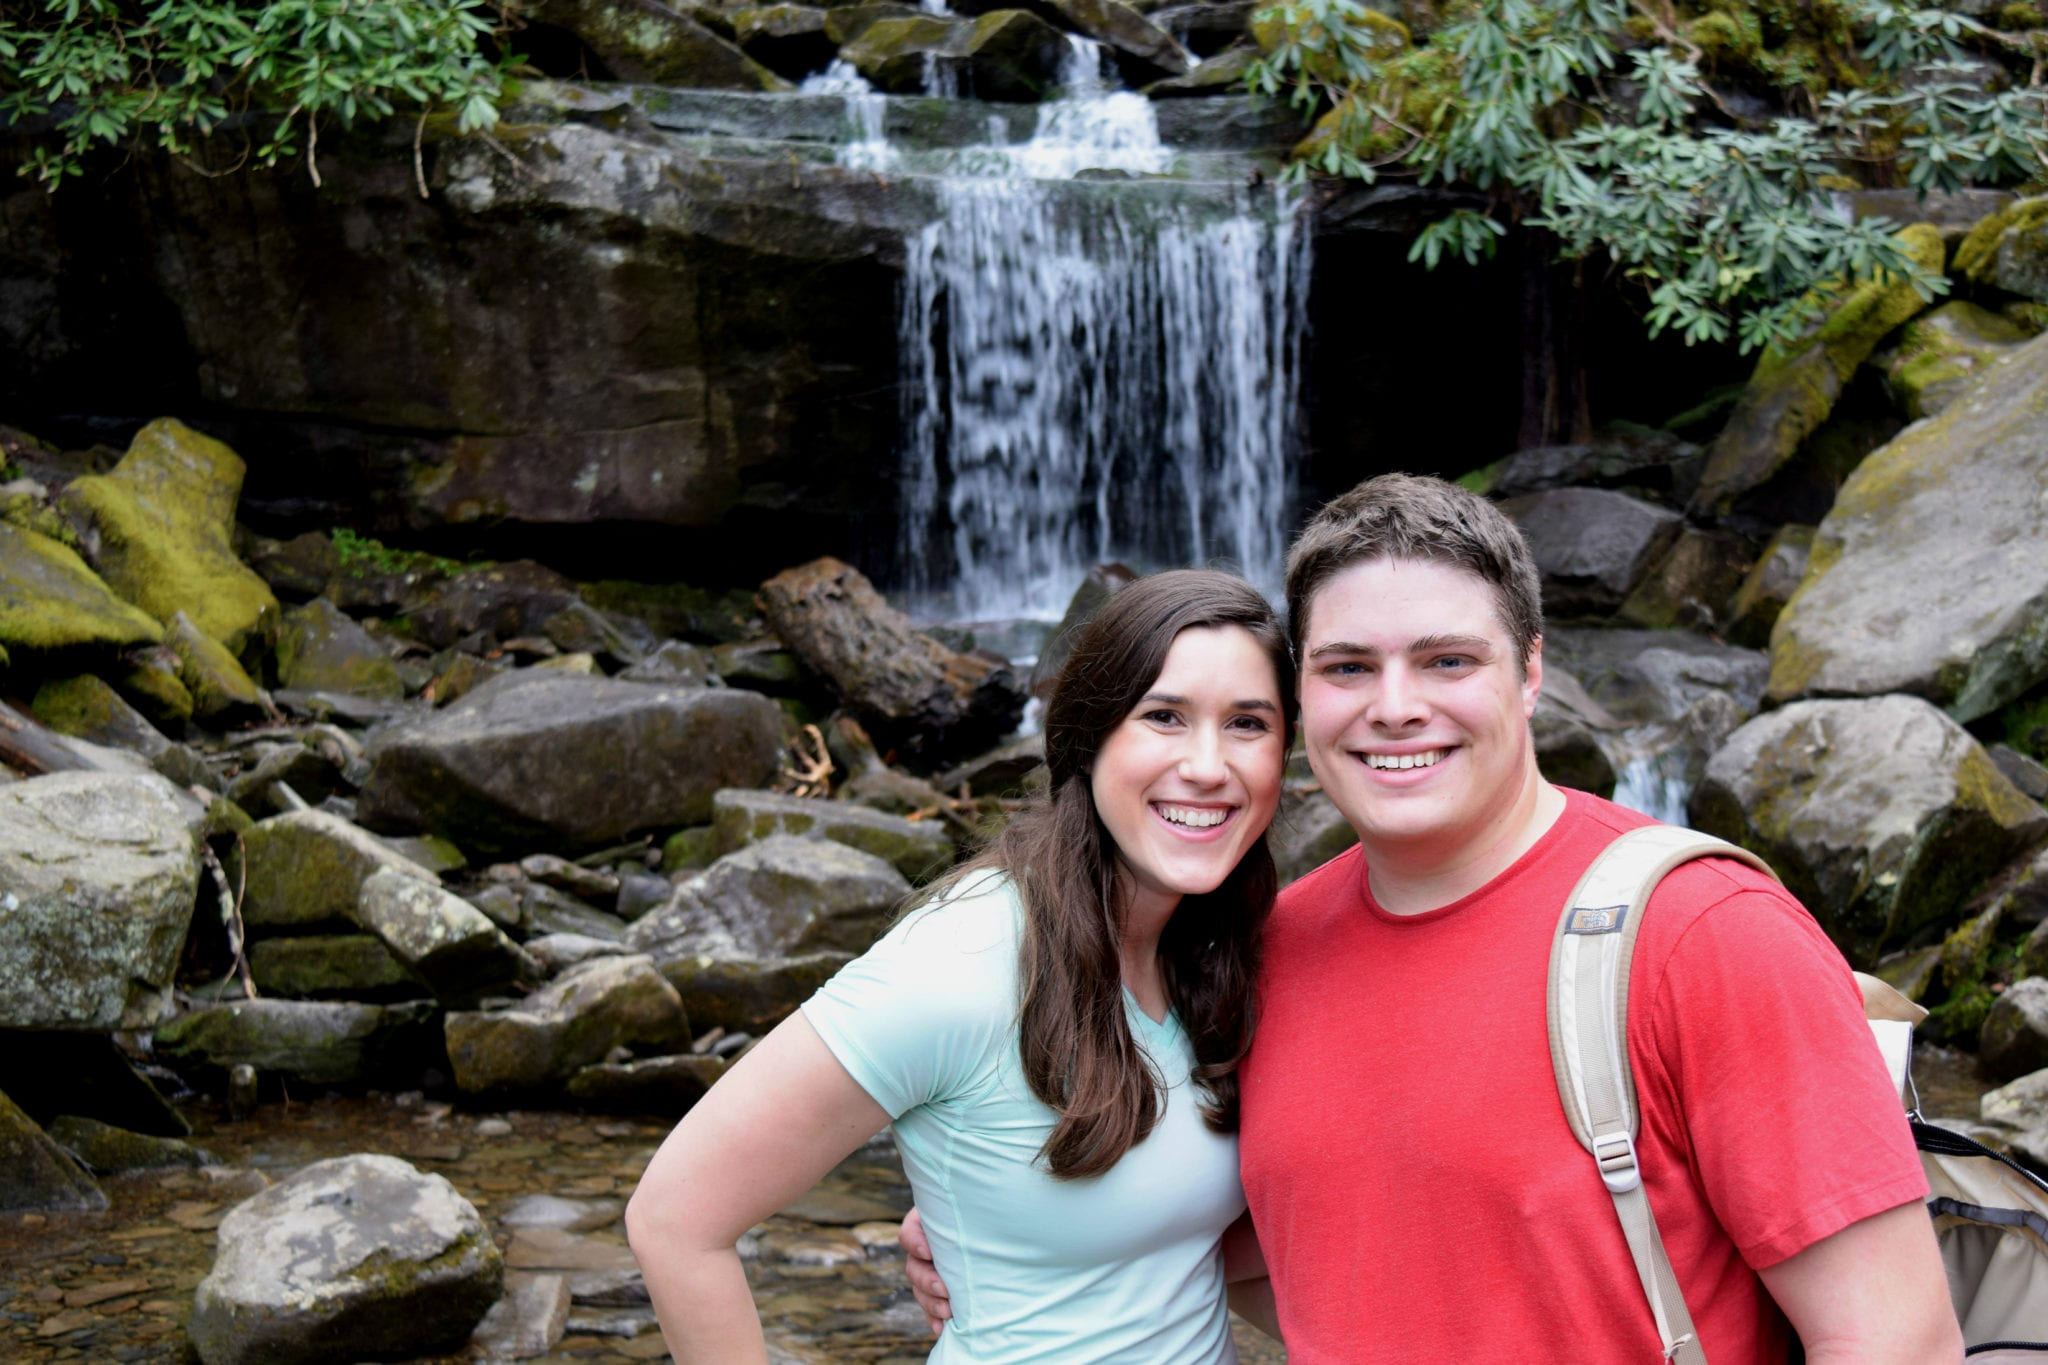 Kate and Jeremy standing in front of a small waterfall in Great Smoky Mountains National Park. Kate is wearing a blue shirt and Jeremy red. GSMNP is easily accessible from Asheville, one of the best cities for weekend getaways in the USA!